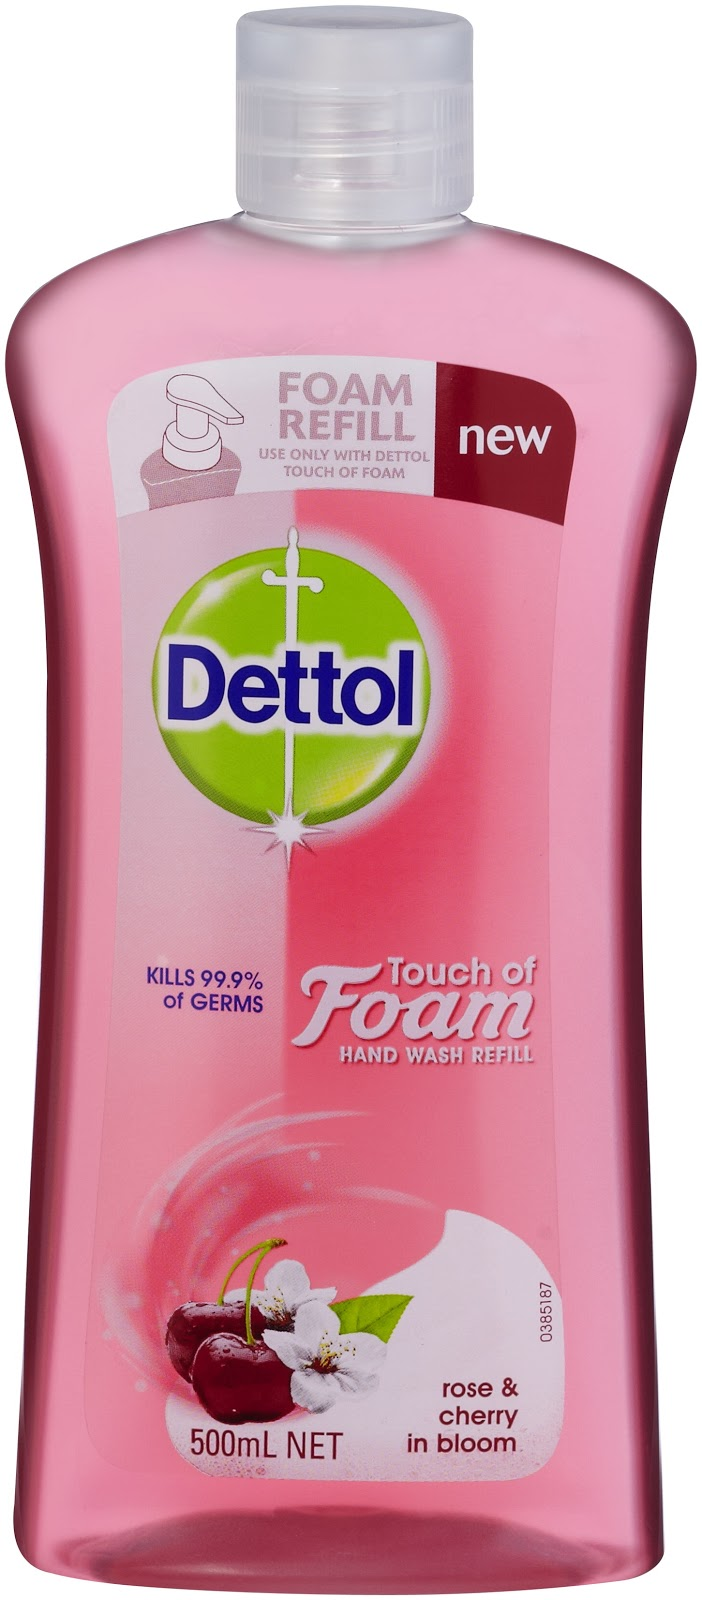 To find out more about dettol touch of foam hand wash or other dettol